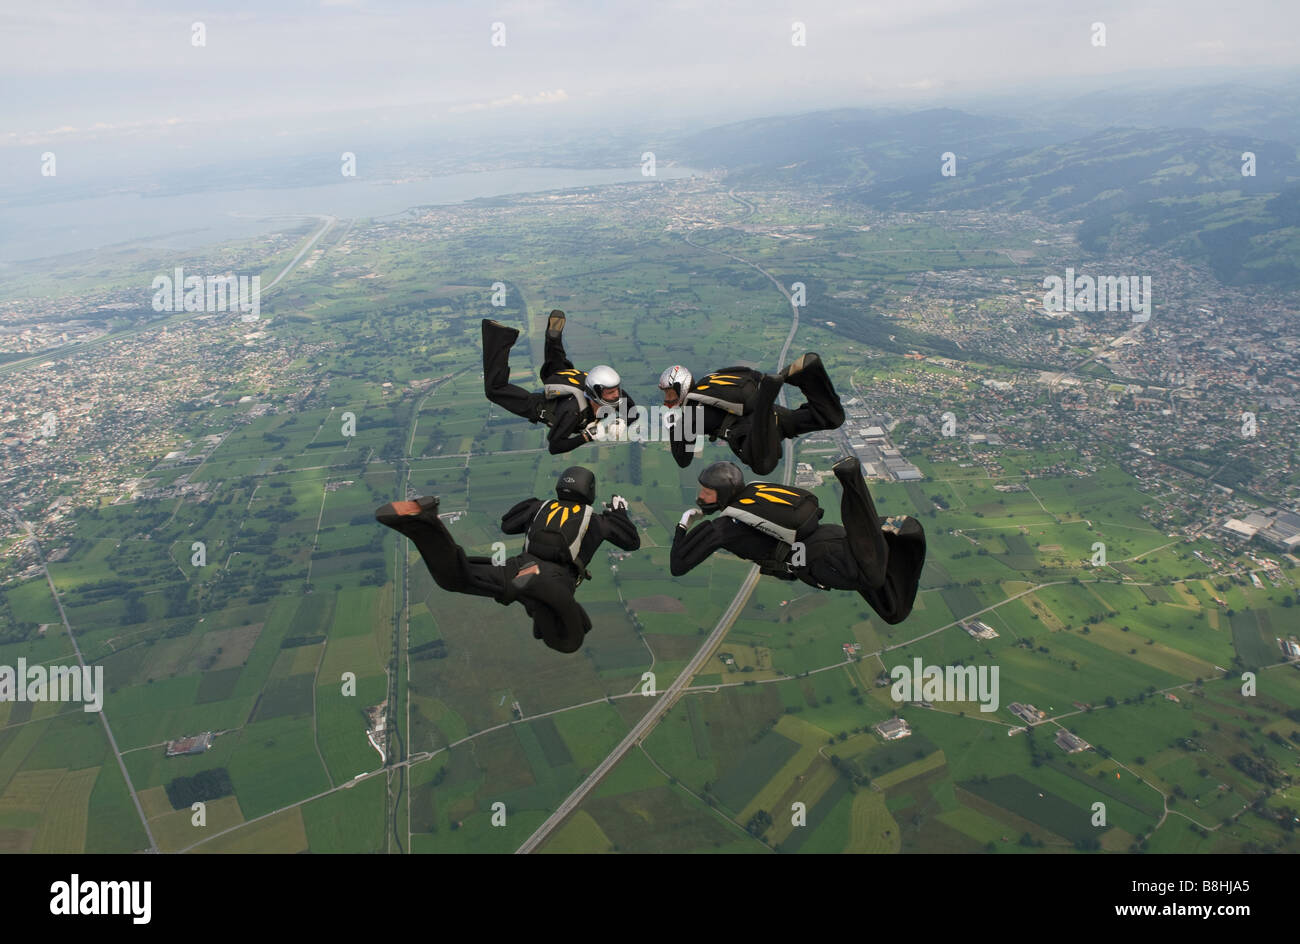 Skydiver team VIVA is flying a formation in the sky below clouds. 4-way RW skydive team is competing at the National - Stock Image